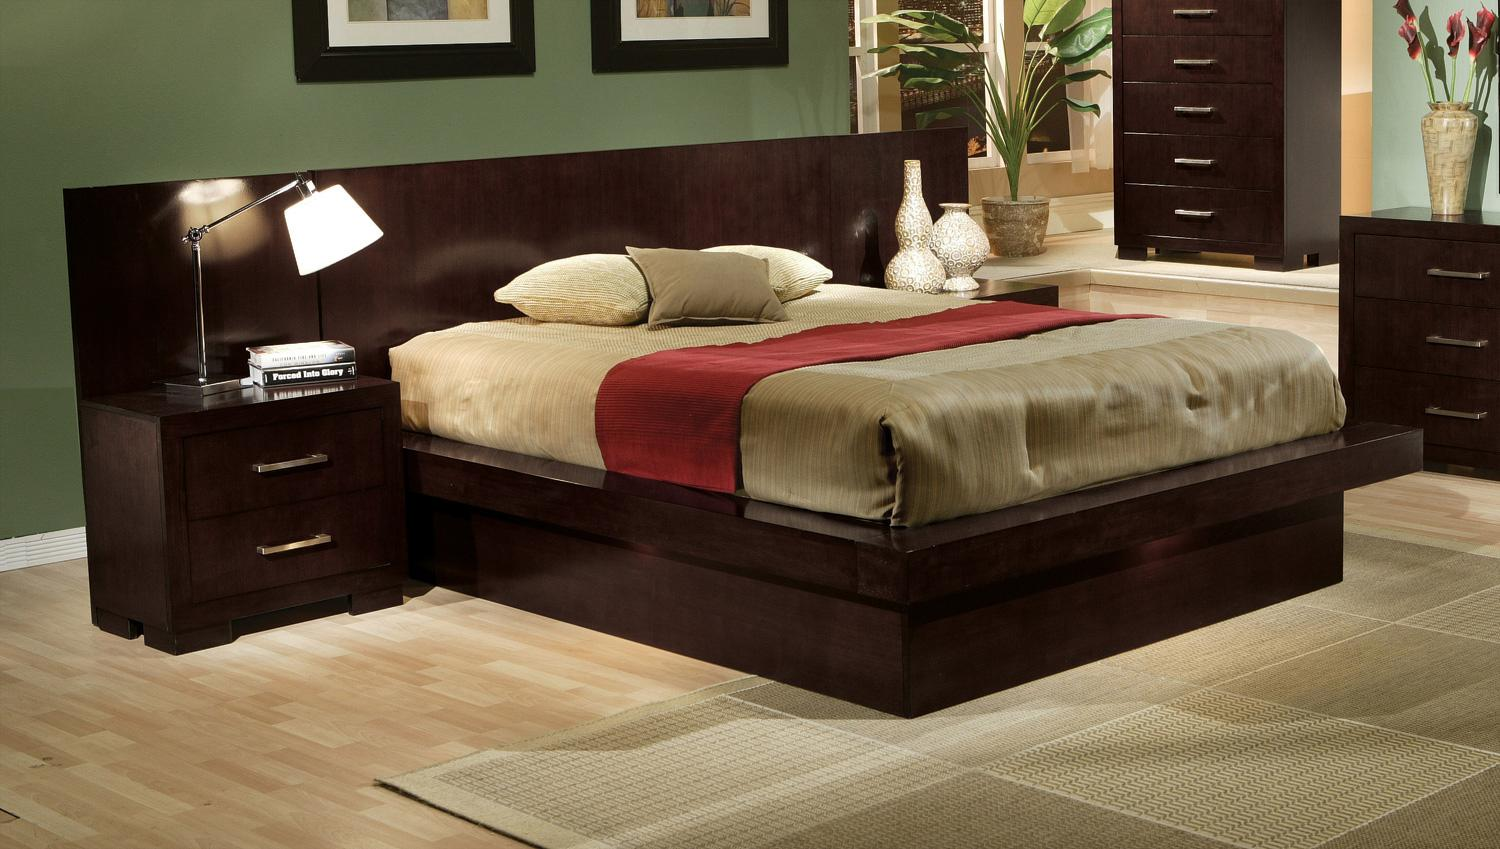 Modern platform bed queen bedroom arlington va furniture for Bedroom furniture places